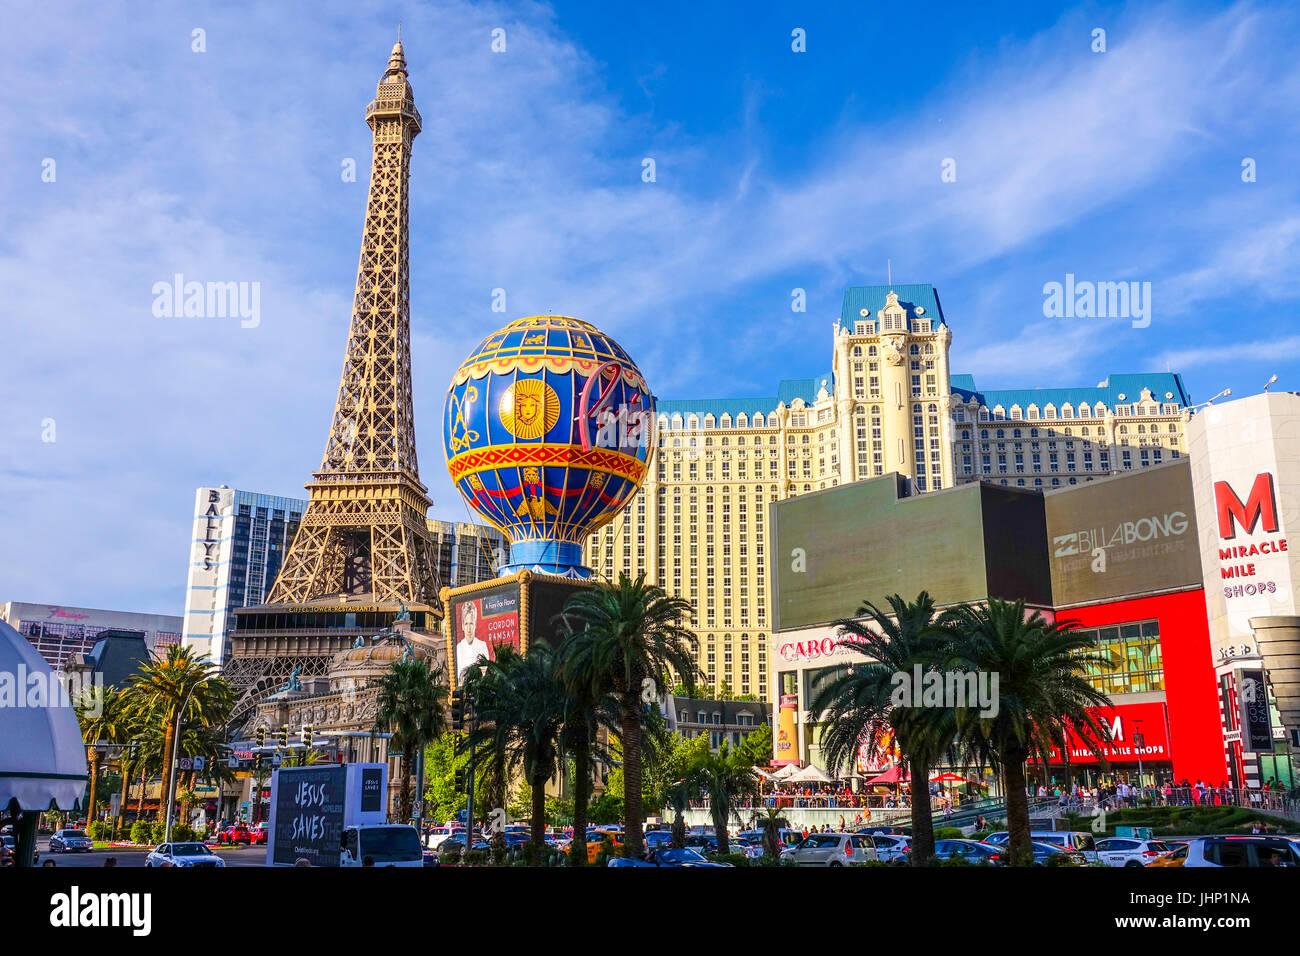 Paris Hotel and Casino in Las Vegas - LAS VEGAS / NEVADA - APRIL 25, 2017 - Stock Image